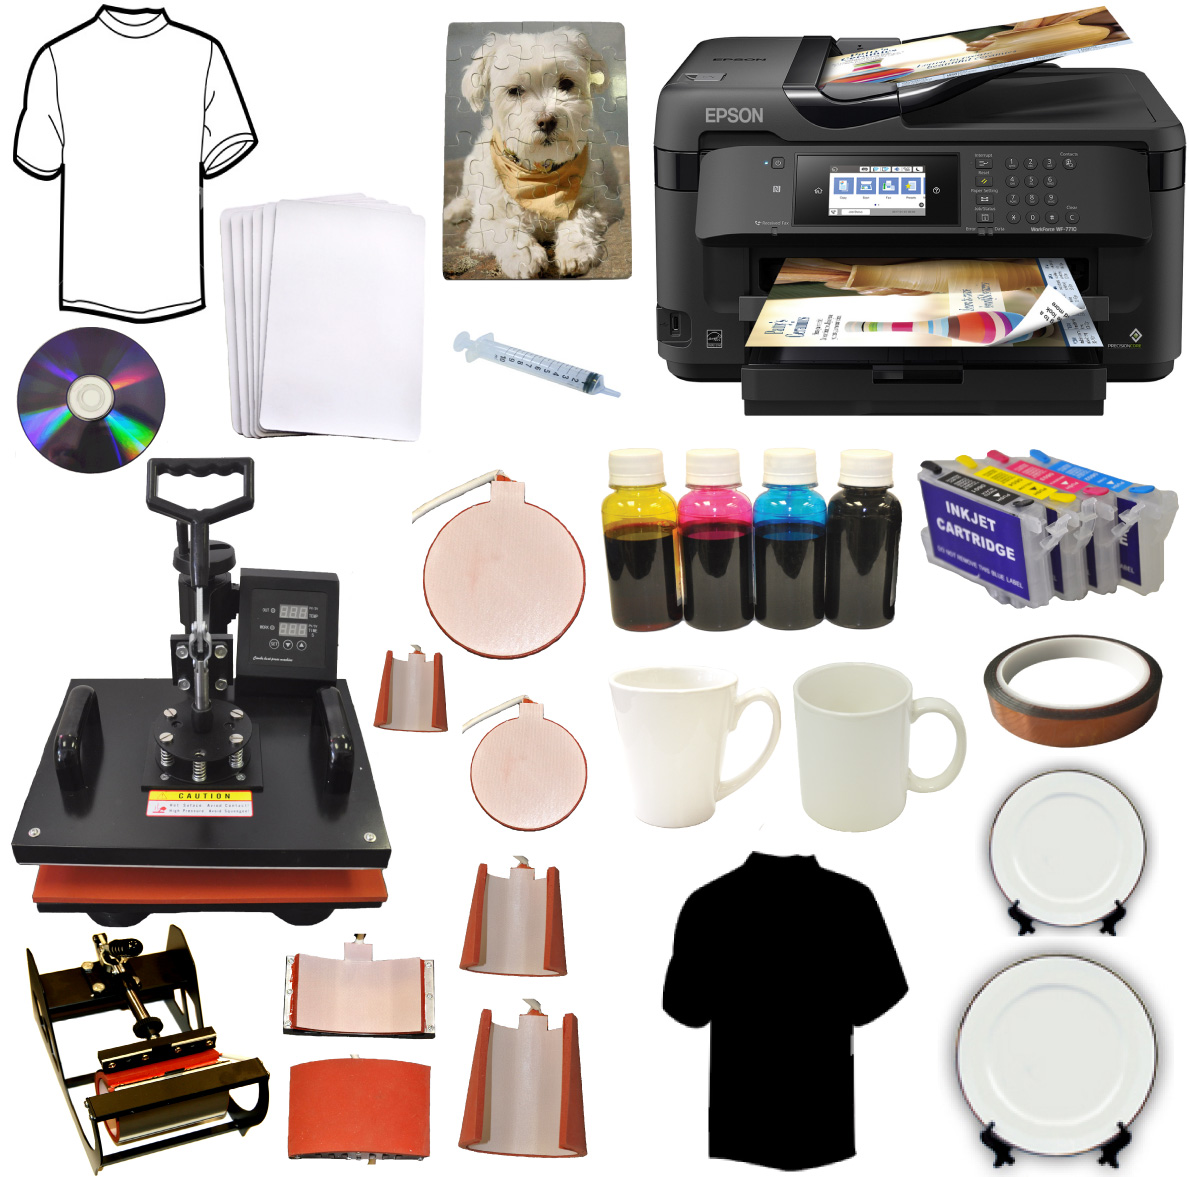 8in1 Sublimation Heat Press,13x19 Wireless Sublimation Printer